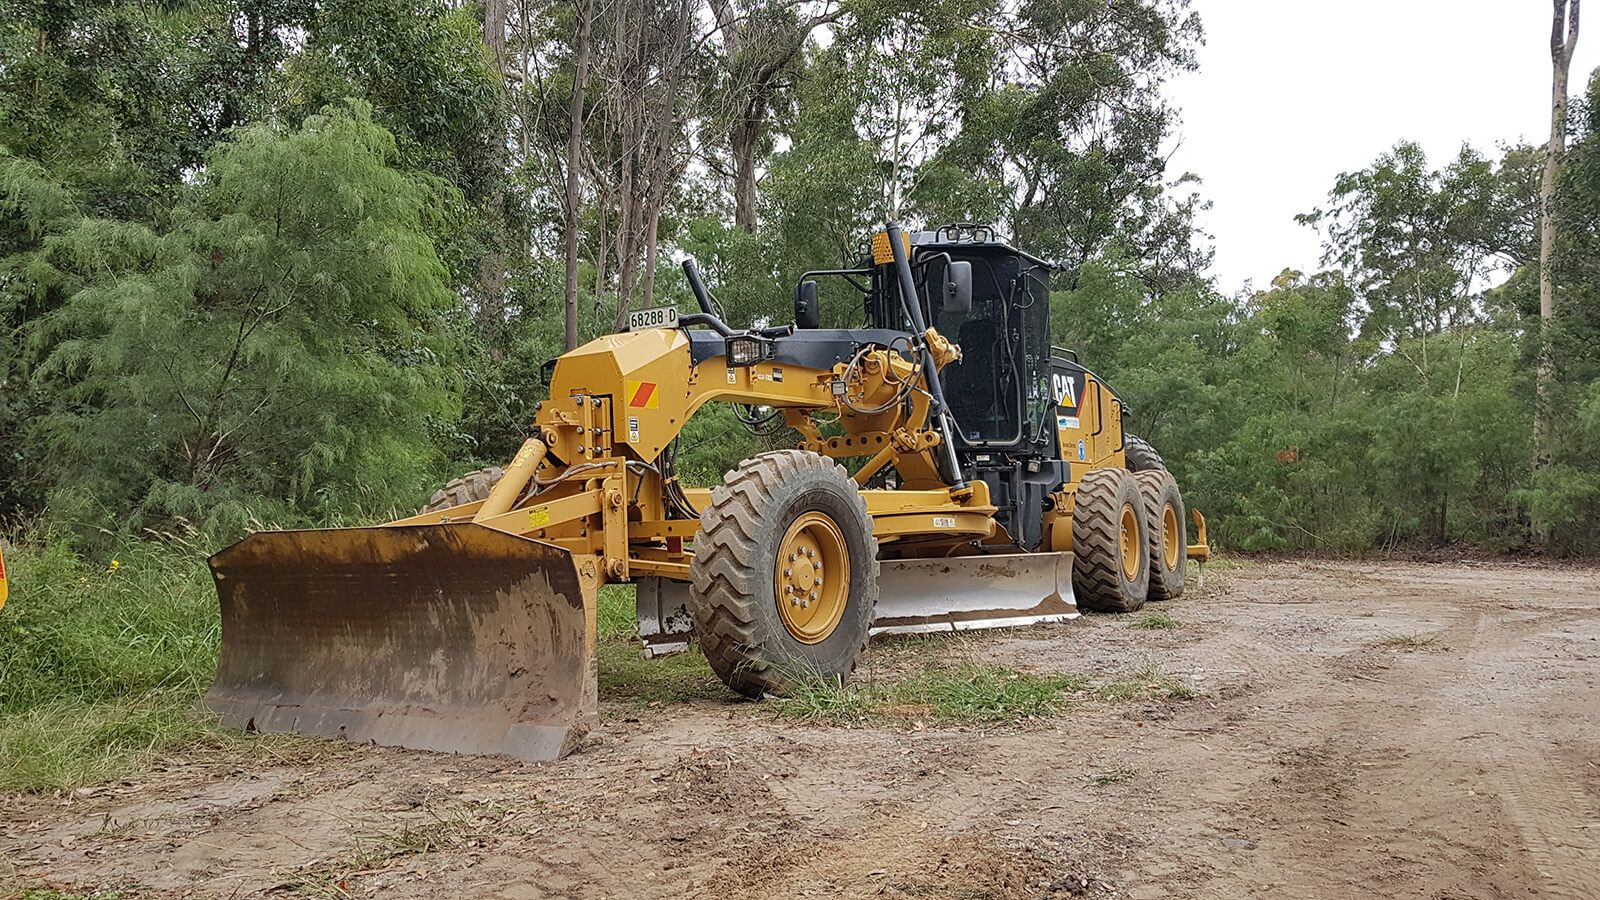 A yellow grader machine parked on a dirt road banner image